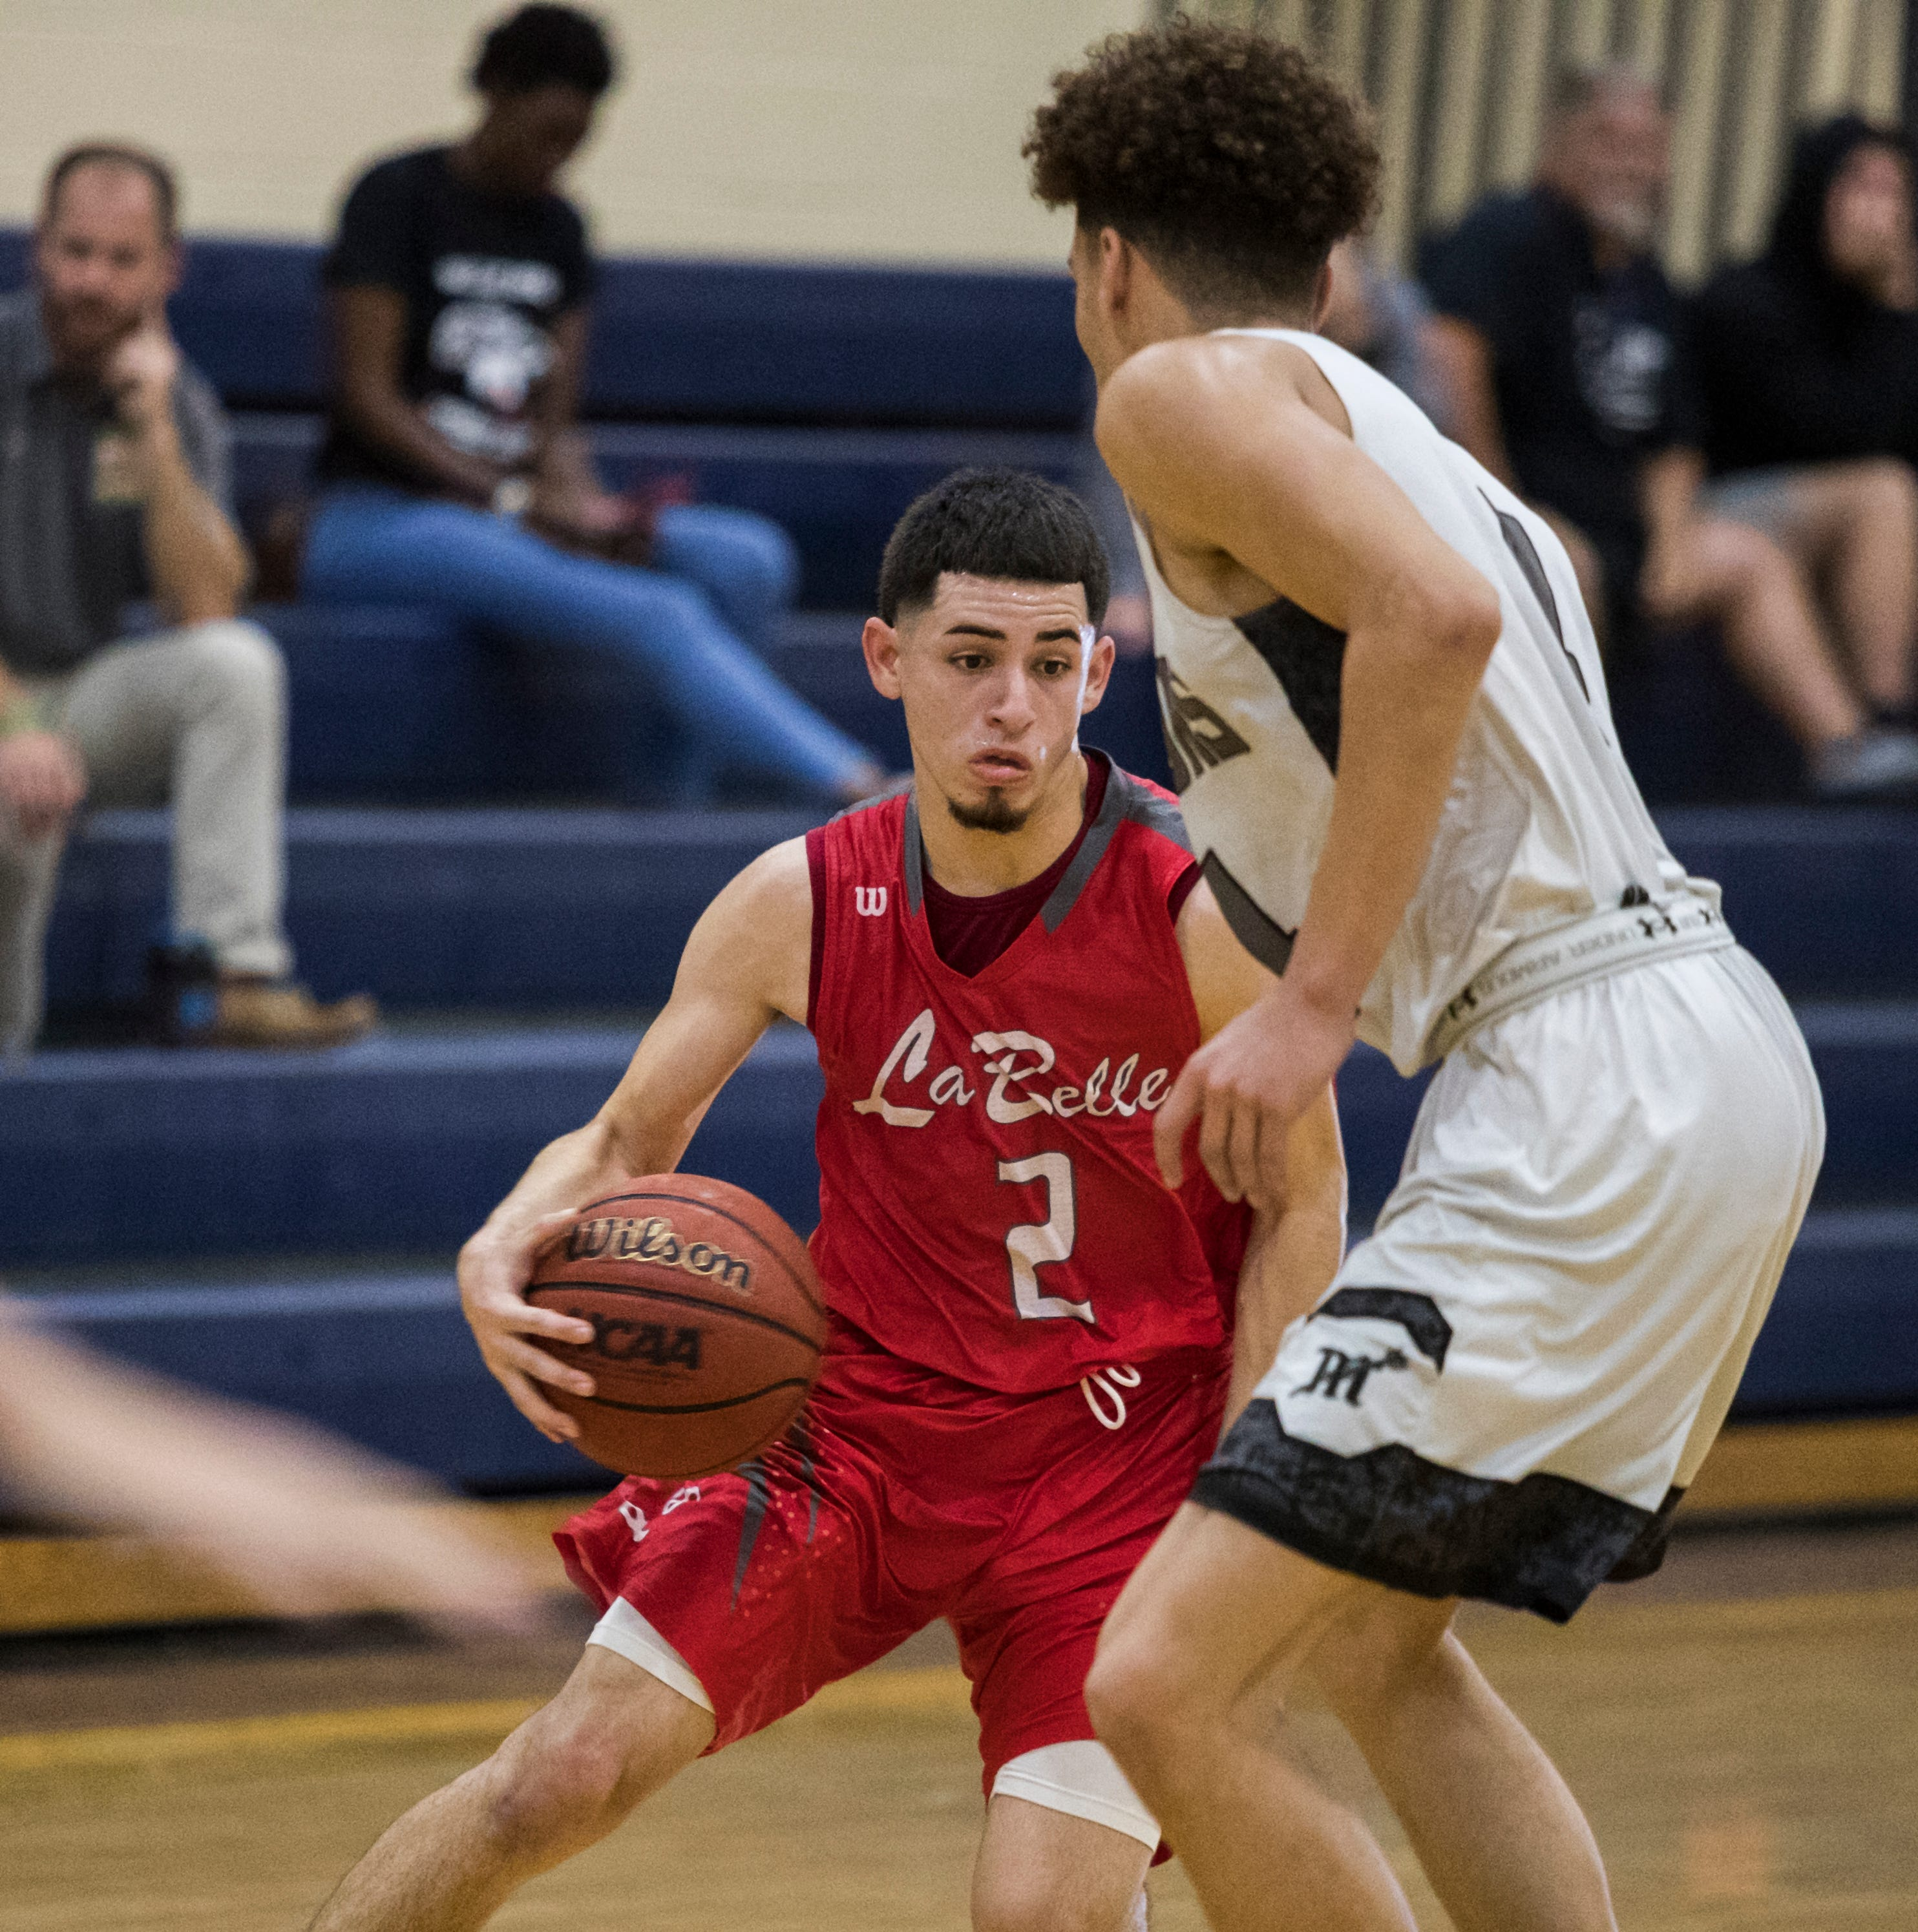 LaBelle's brand of hard-nosed defense, sharpshooting carries it in district title chase